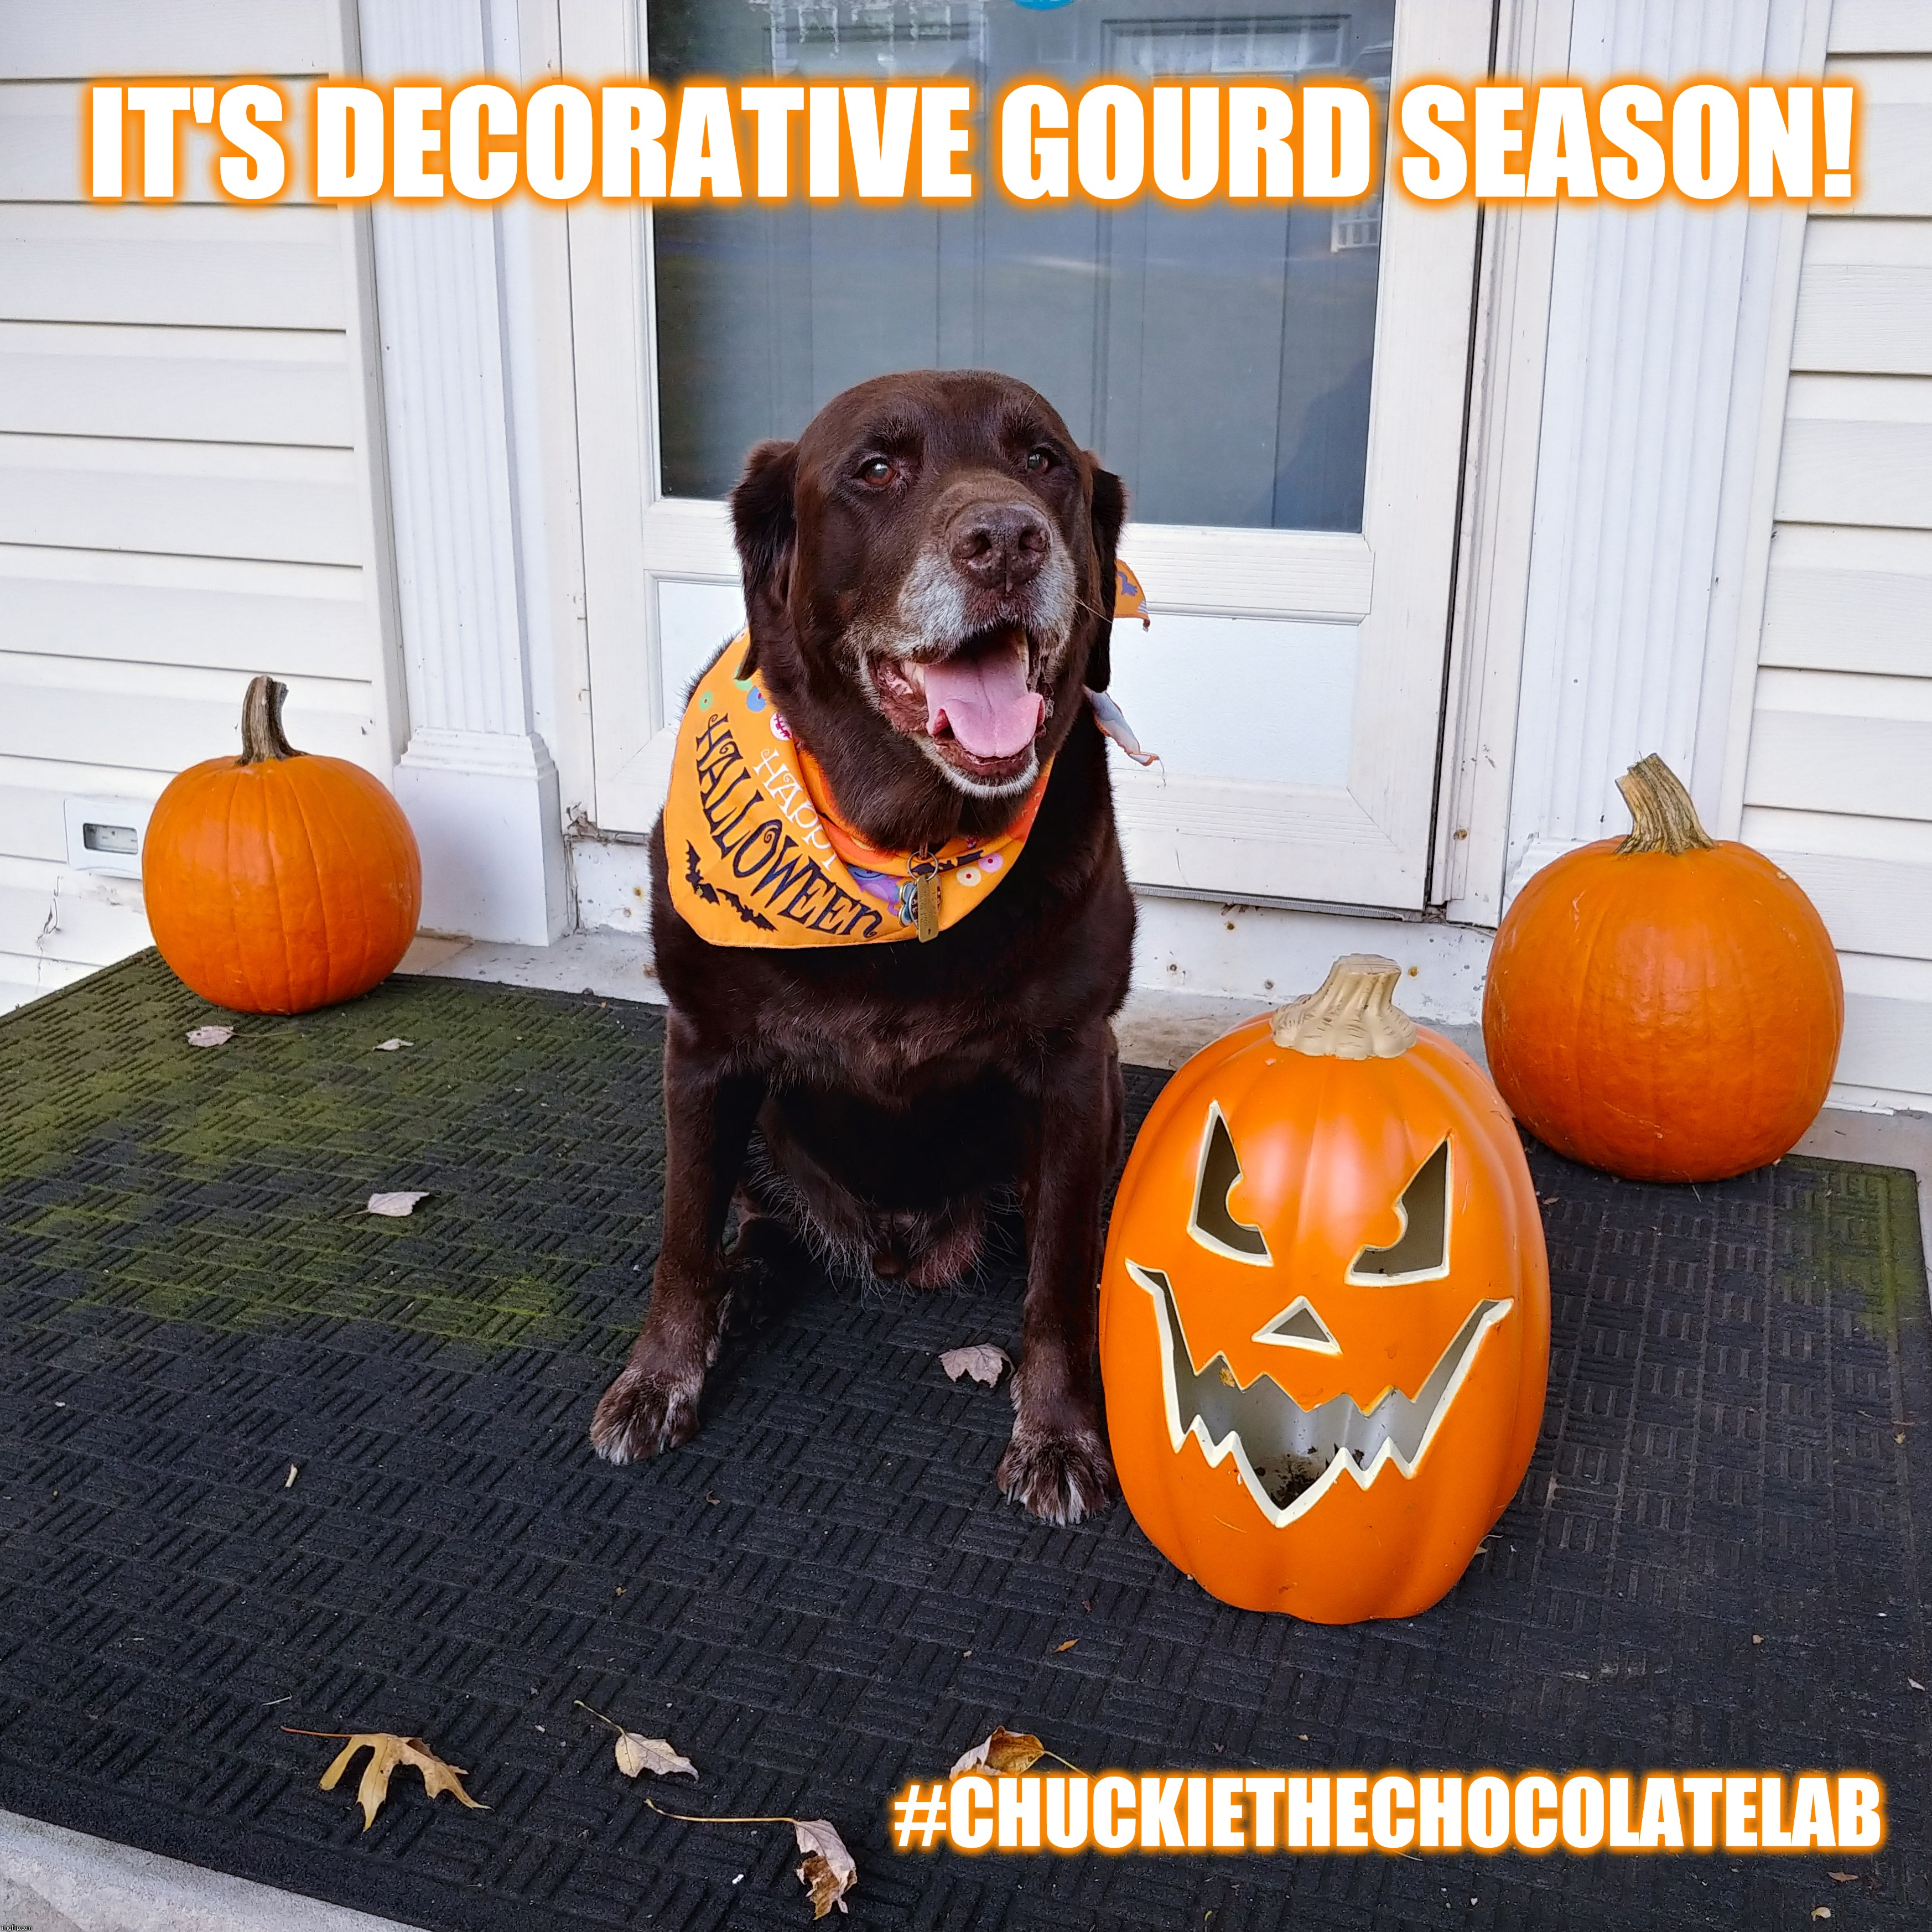 Decorative Gourd Season | IT'S DECORATIVE GOURD SEASON! #CHUCKIETHECHOCOLATELAB | image tagged in chuckie the chocolate lab,halloween,pumpkin,decorative gourd season,funny,dogs | made w/ Imgflip meme maker